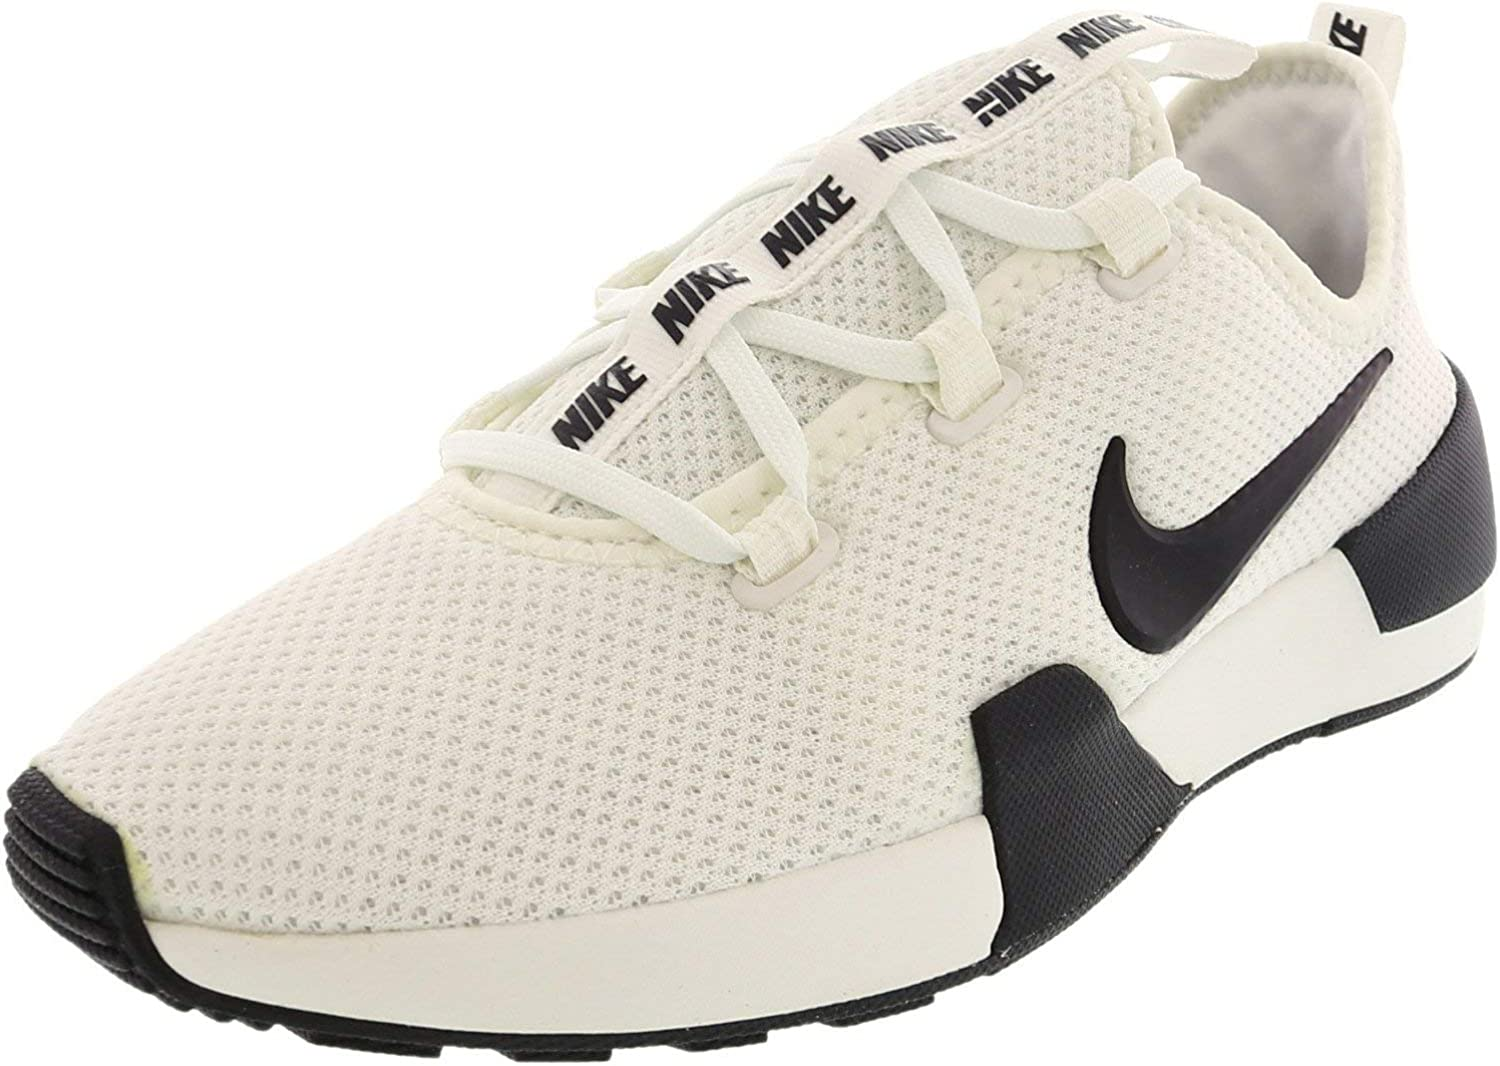 Nike W Ashin Modern, Zapatillas de Running para Mujer, Blanco (Summit White/Black 100), 38.5 EU: Amazon.es: Zapatos y complementos